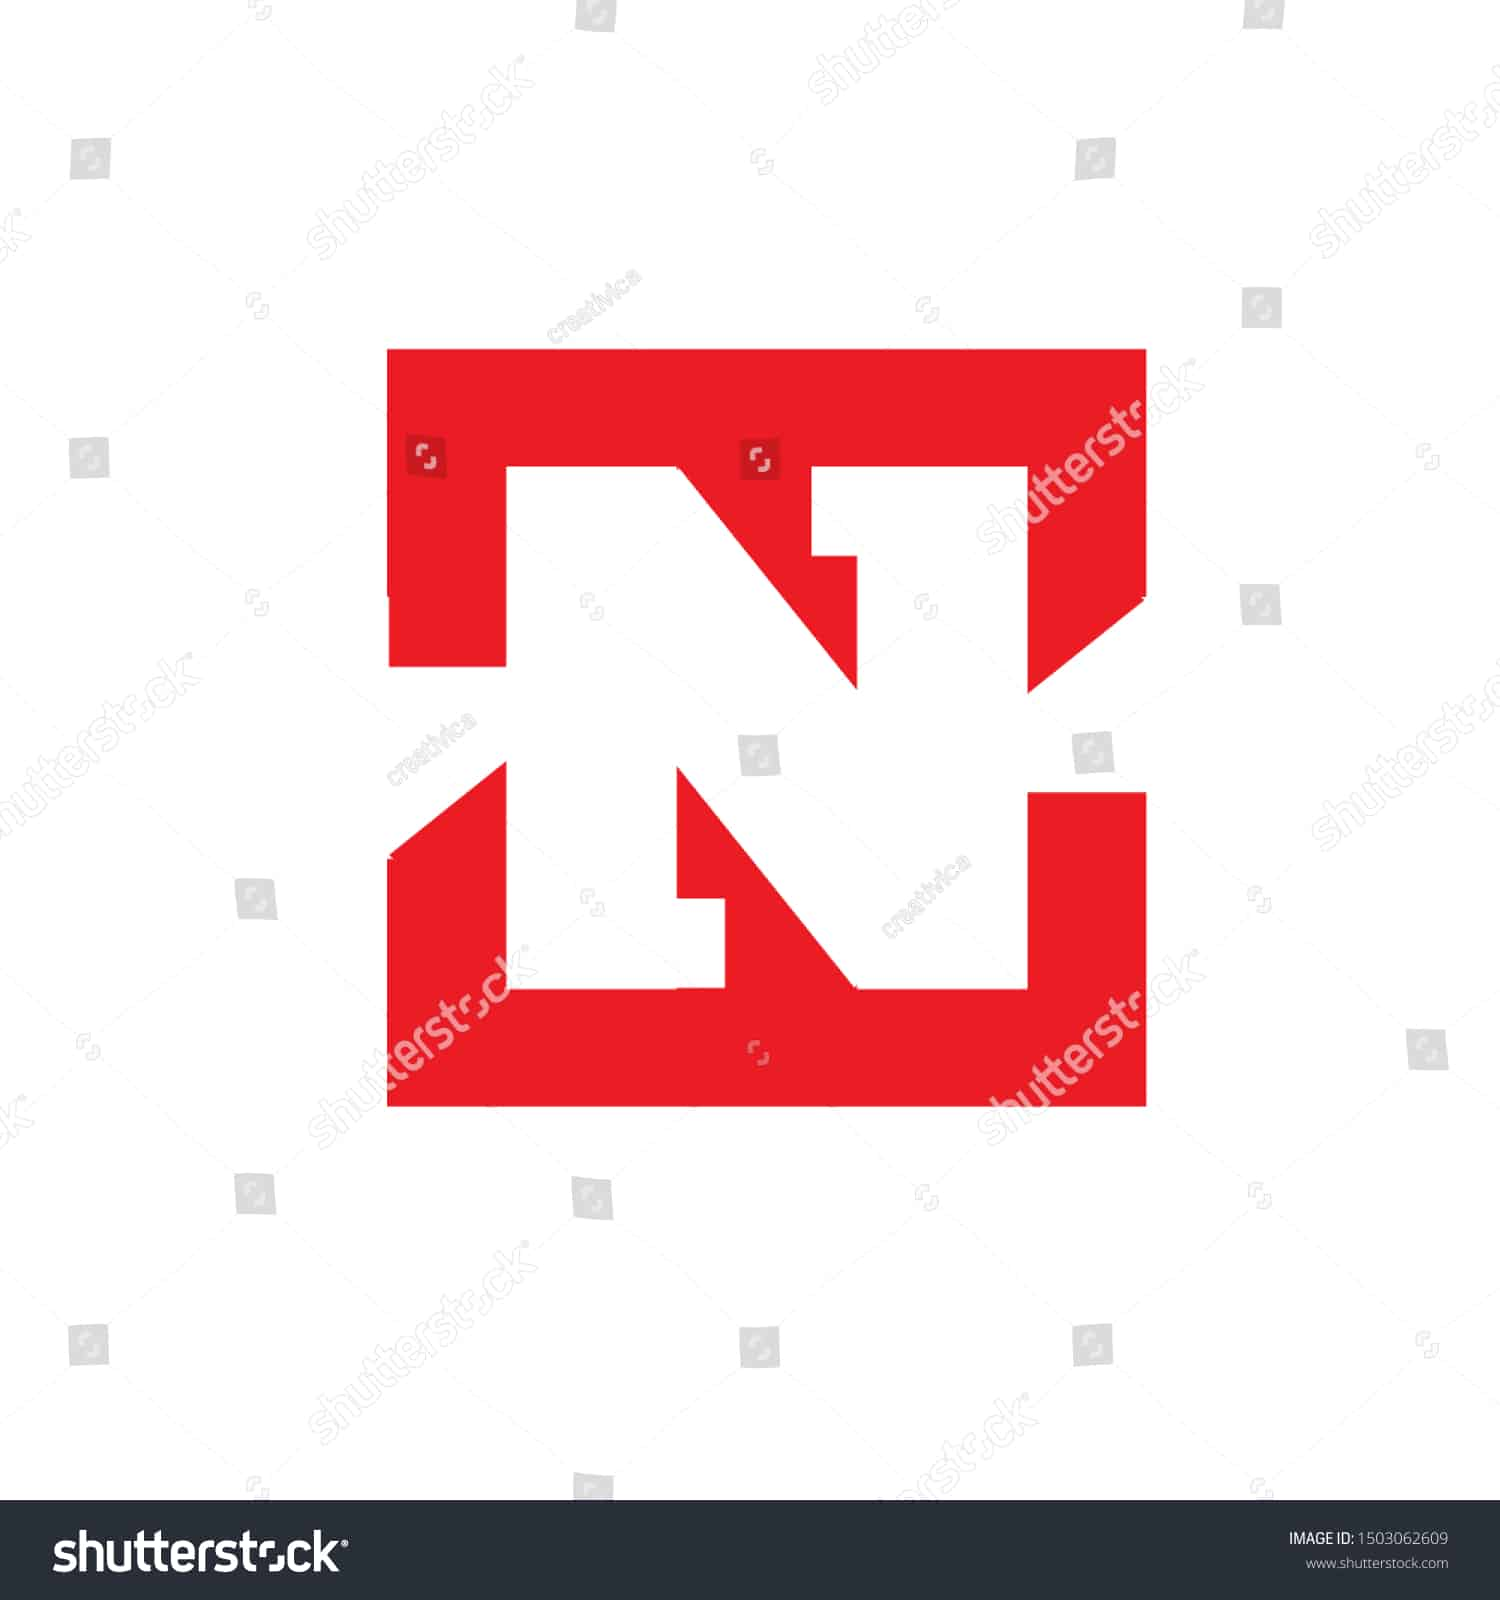 stock-vector--zn-or-nz-monogram-logo-vector-symbol-concept-in-negative-space-this-is-bold-and-strong-in-visual-1503062609